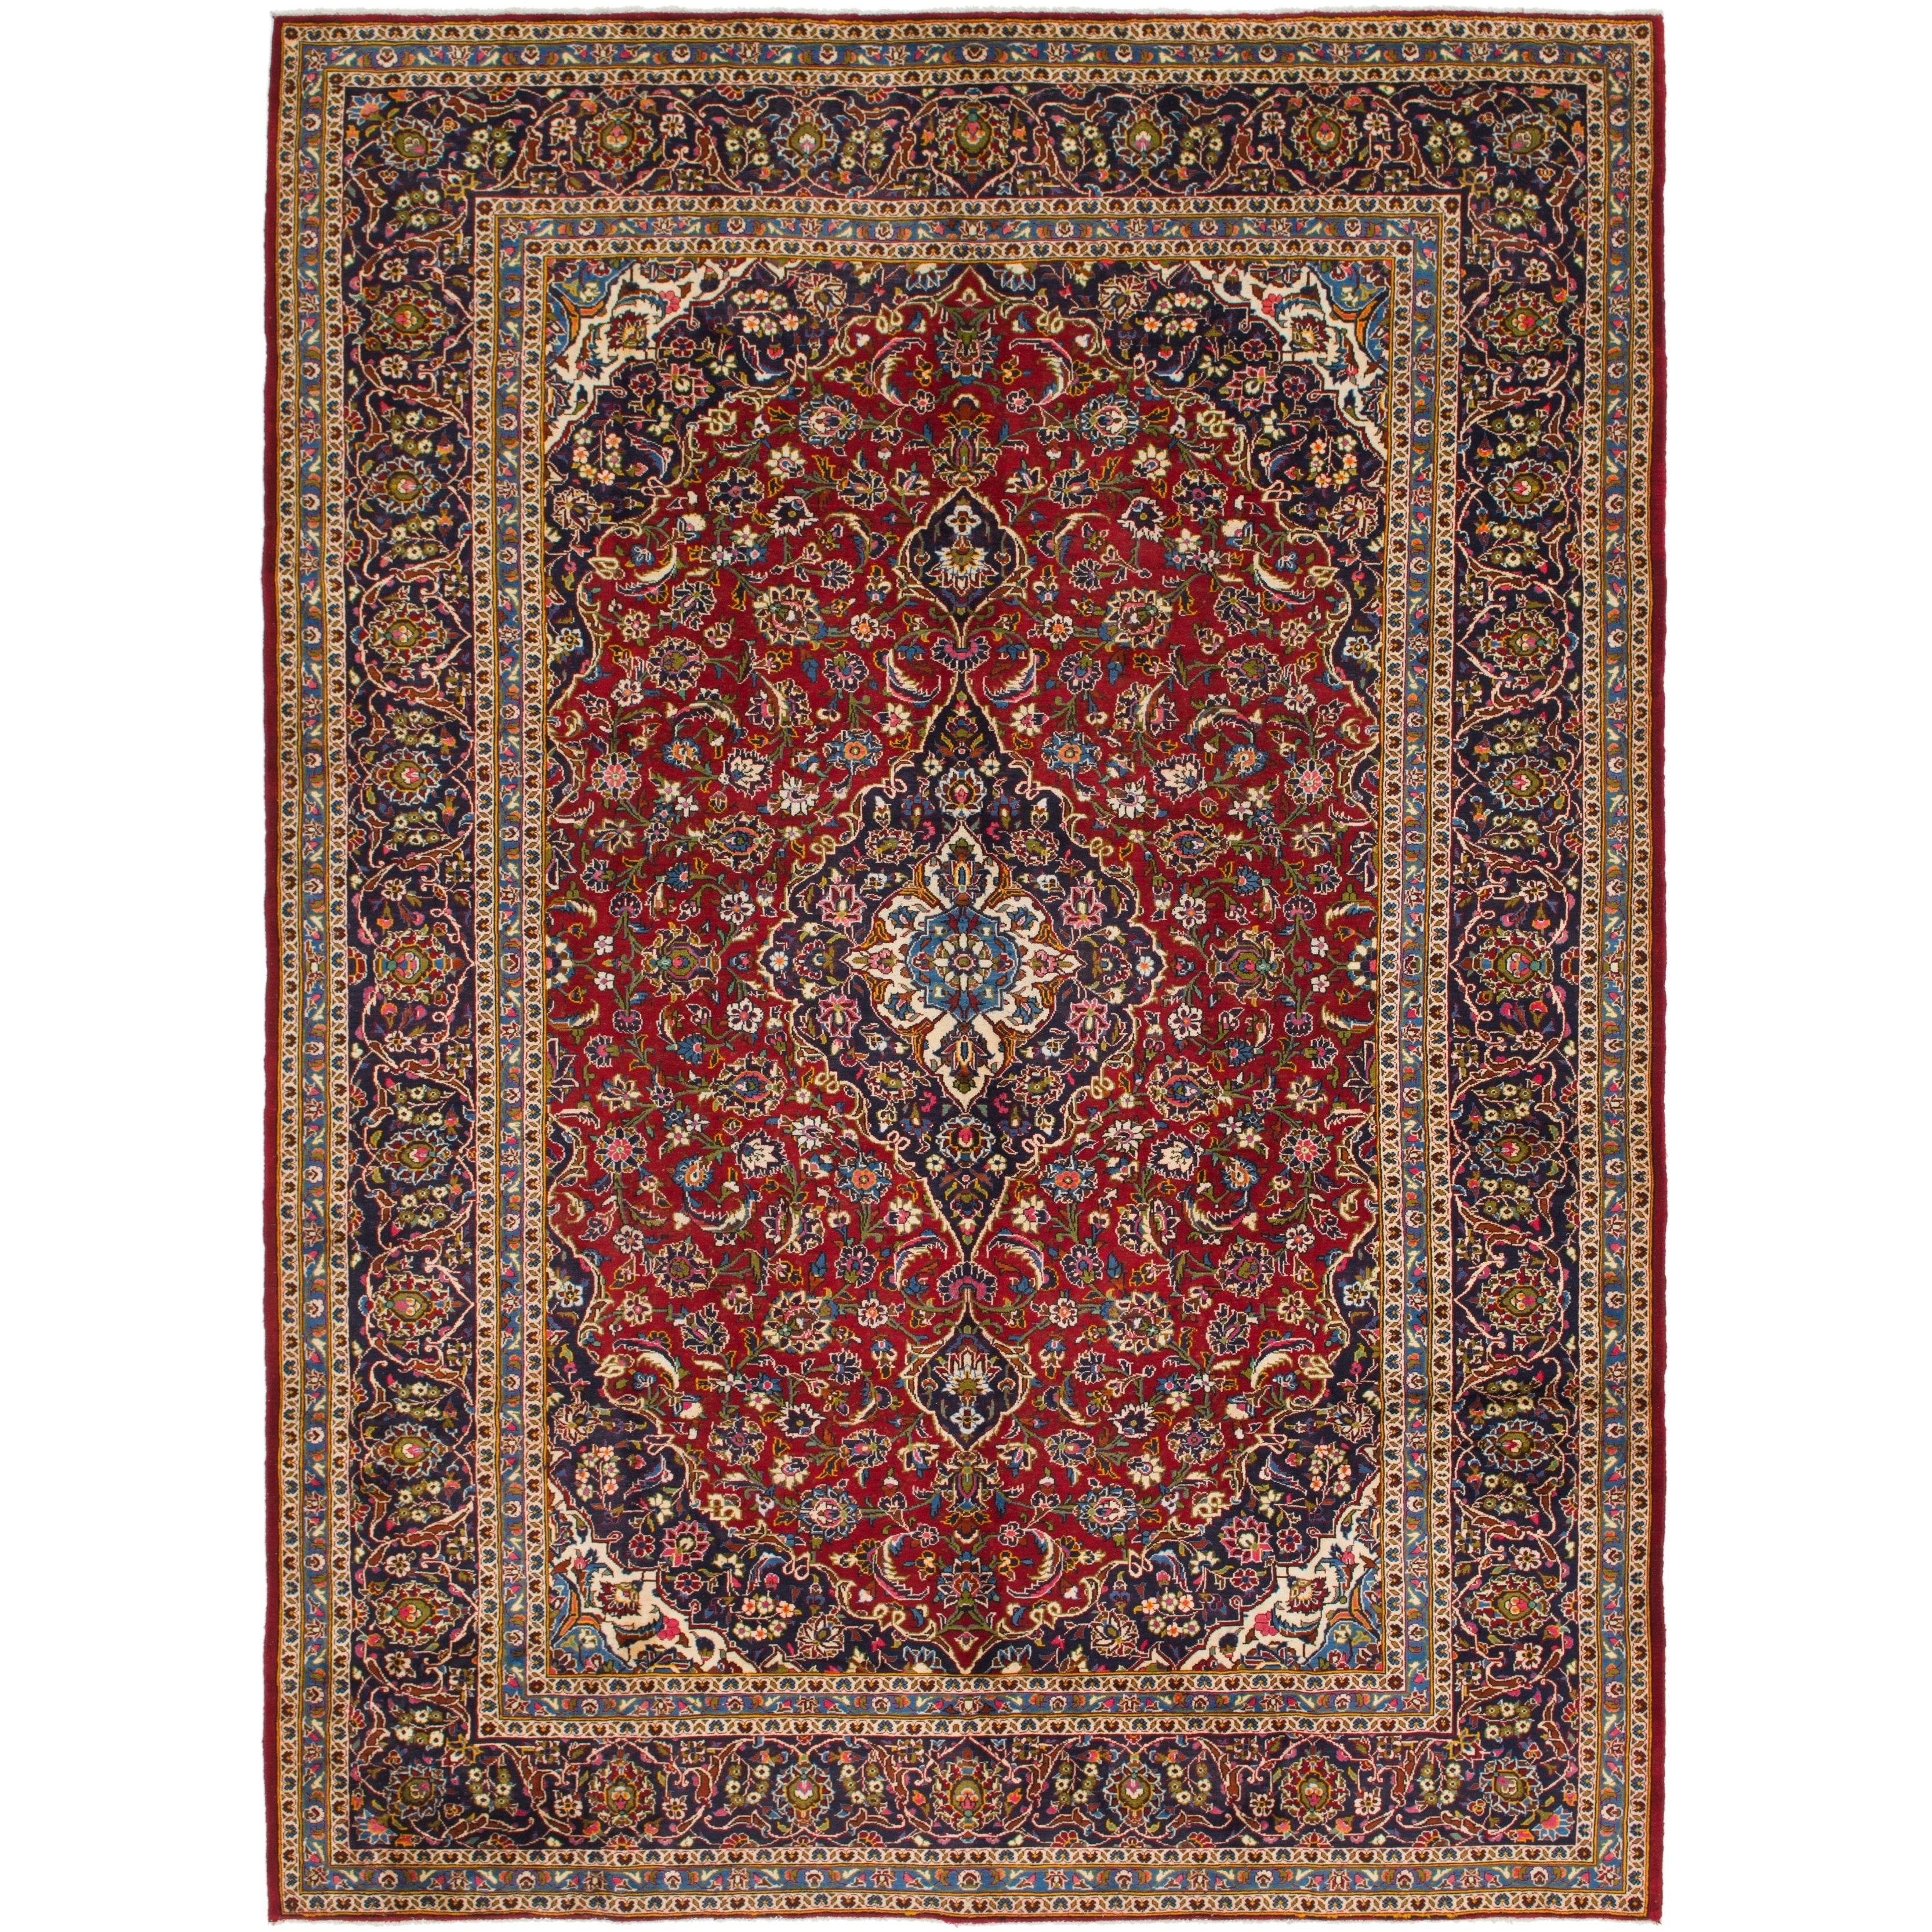 Hand Knotted Kashan Semi Antique Wool Area Rug - 9 8 x 13 3 (Red - 9 8 x 13 3)